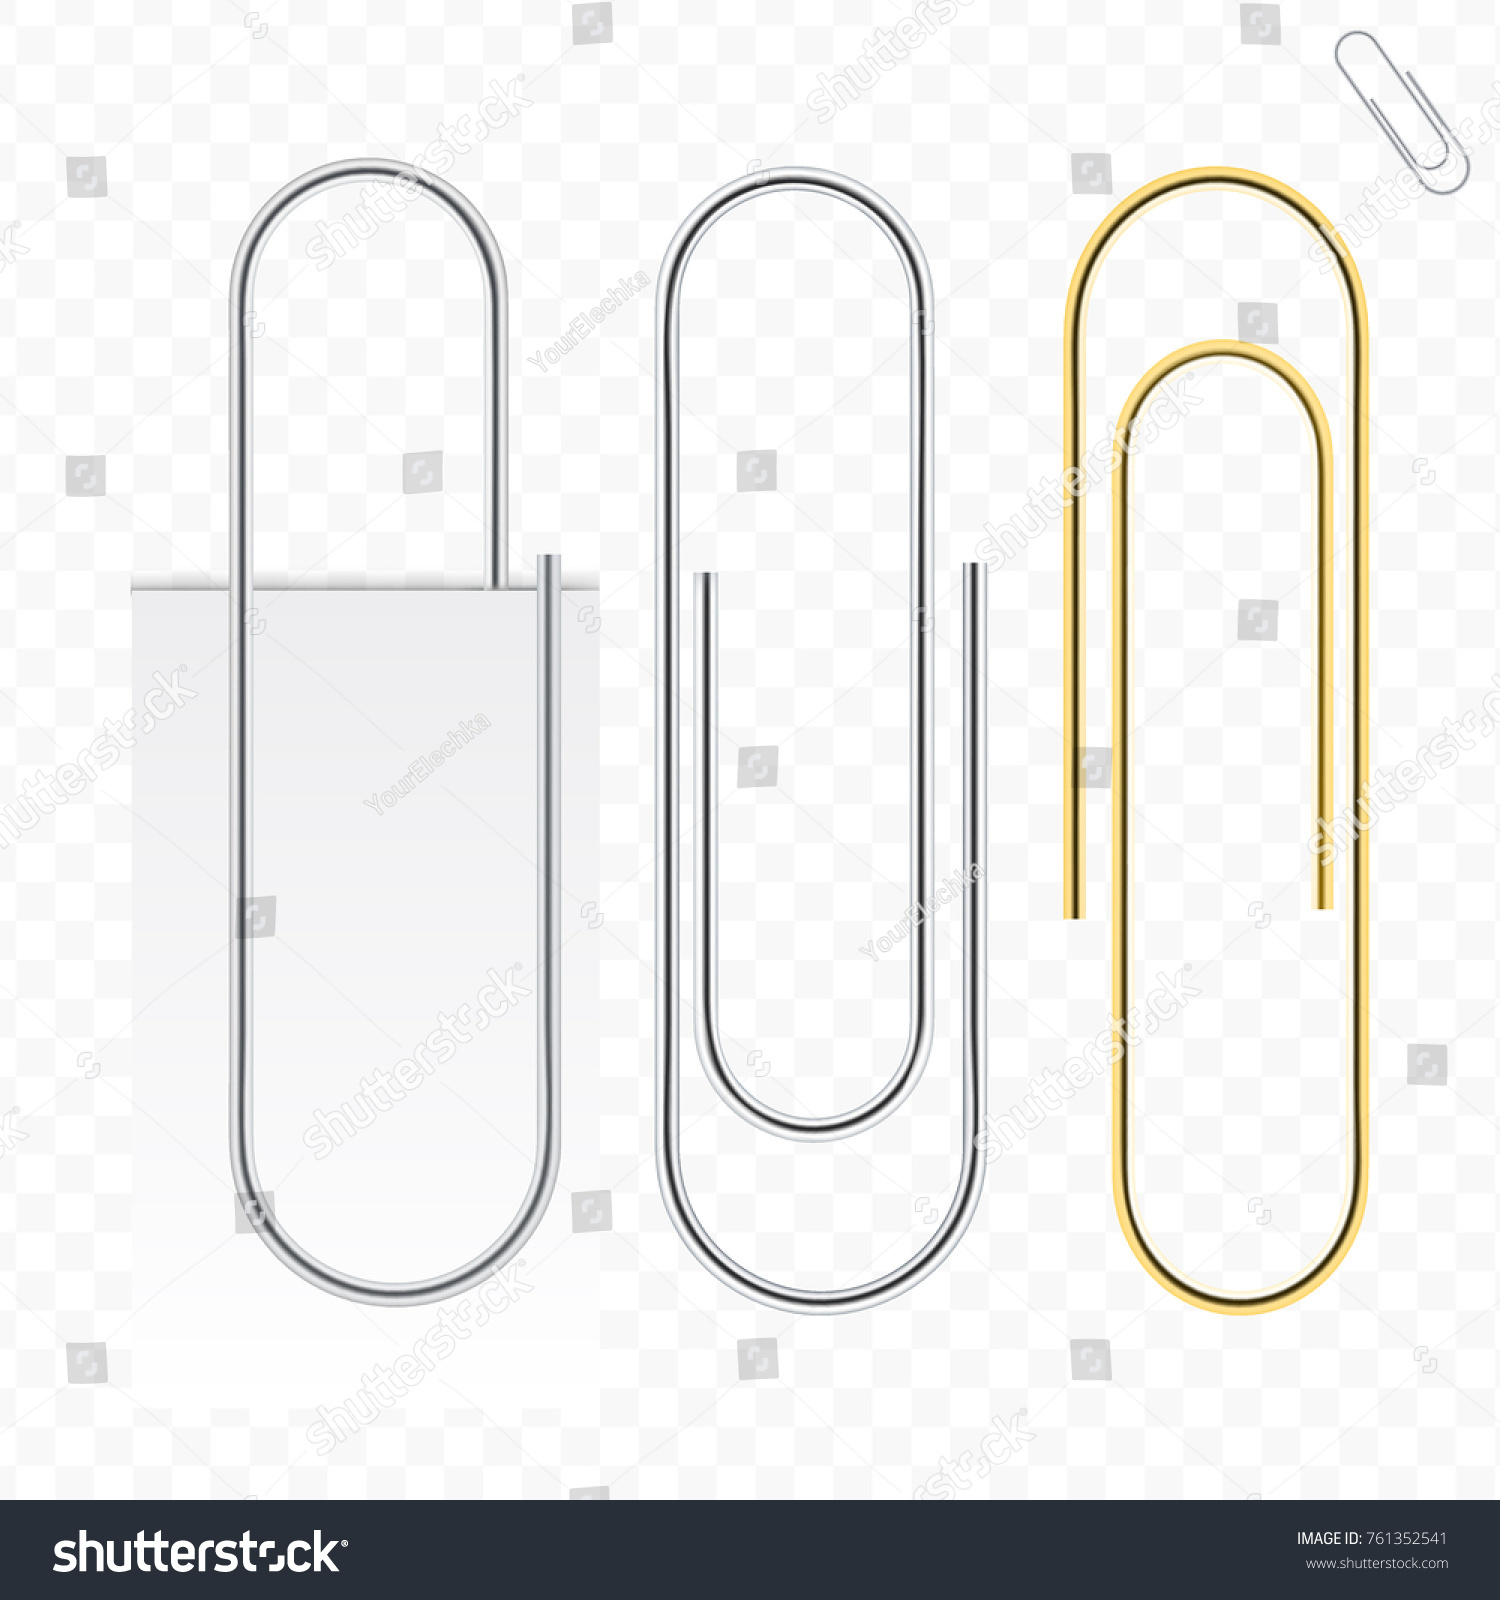 metal paper clip isolated on transparent stock vector (royalty free